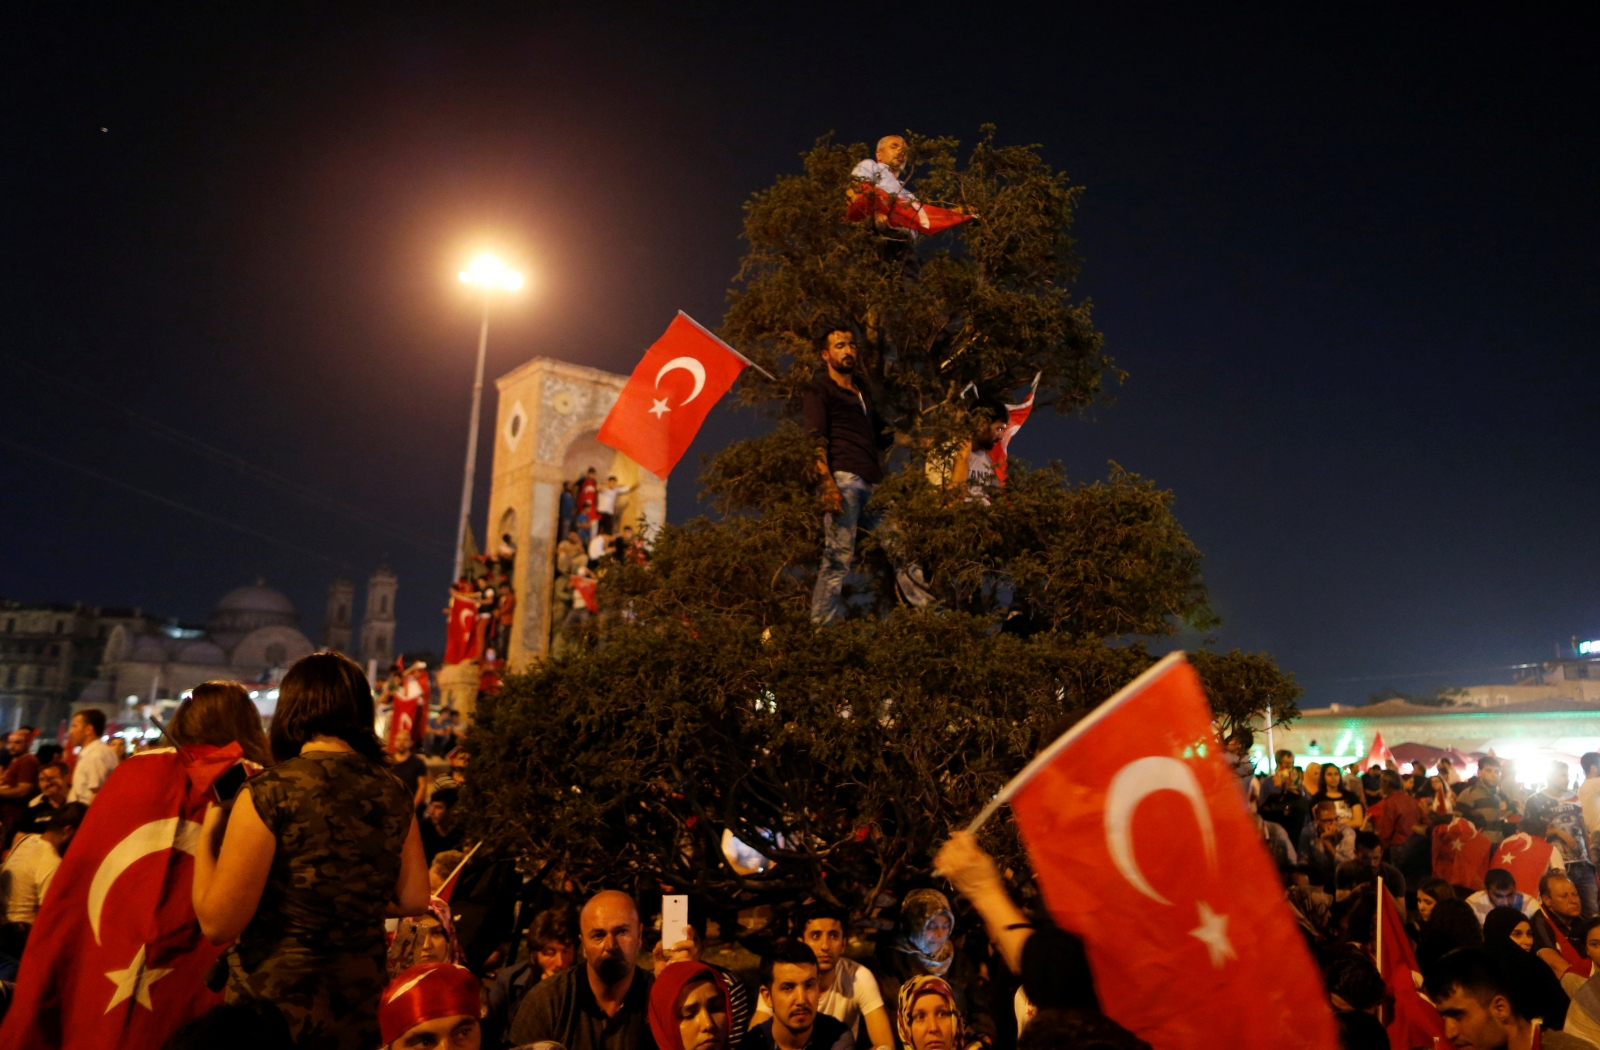 Turkey coup Istanbul cheering crowd 2016